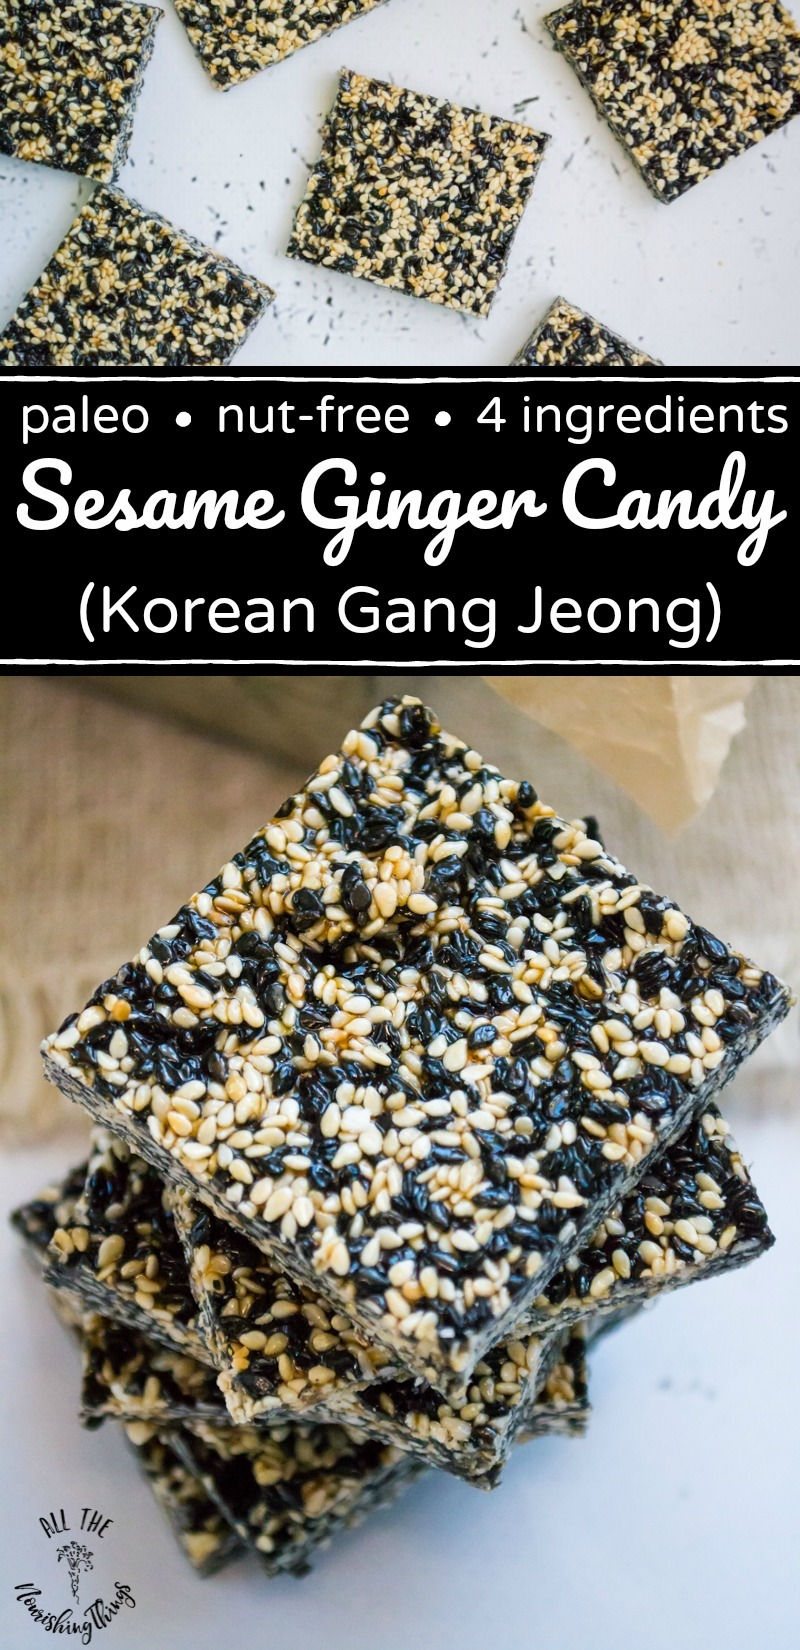 image of squares of paleo sesame ginger candy with black text overlay over image of stacked paleo gang jeong